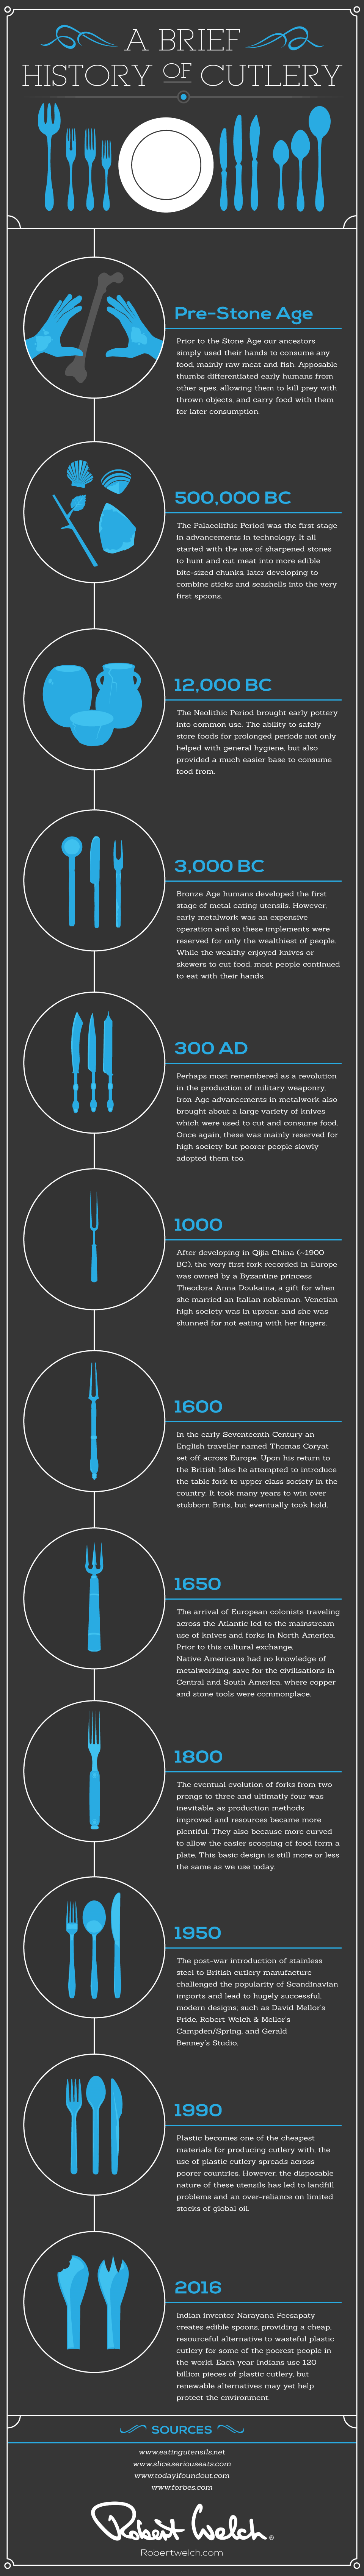 A Brief History of Cutlery #Infographic